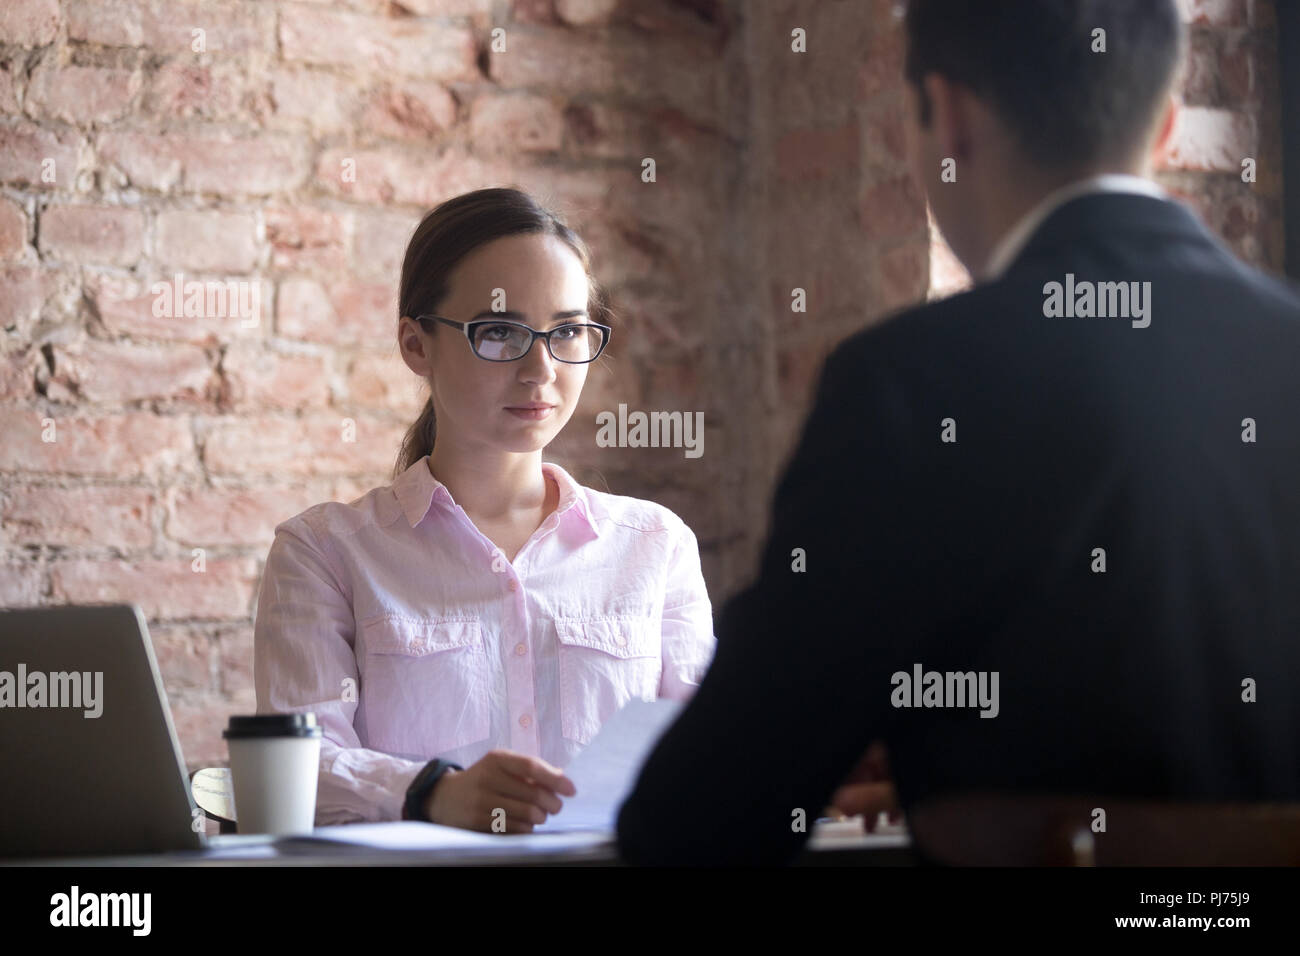 Serious young HR manager woman interviewing male candidate - Stock Image